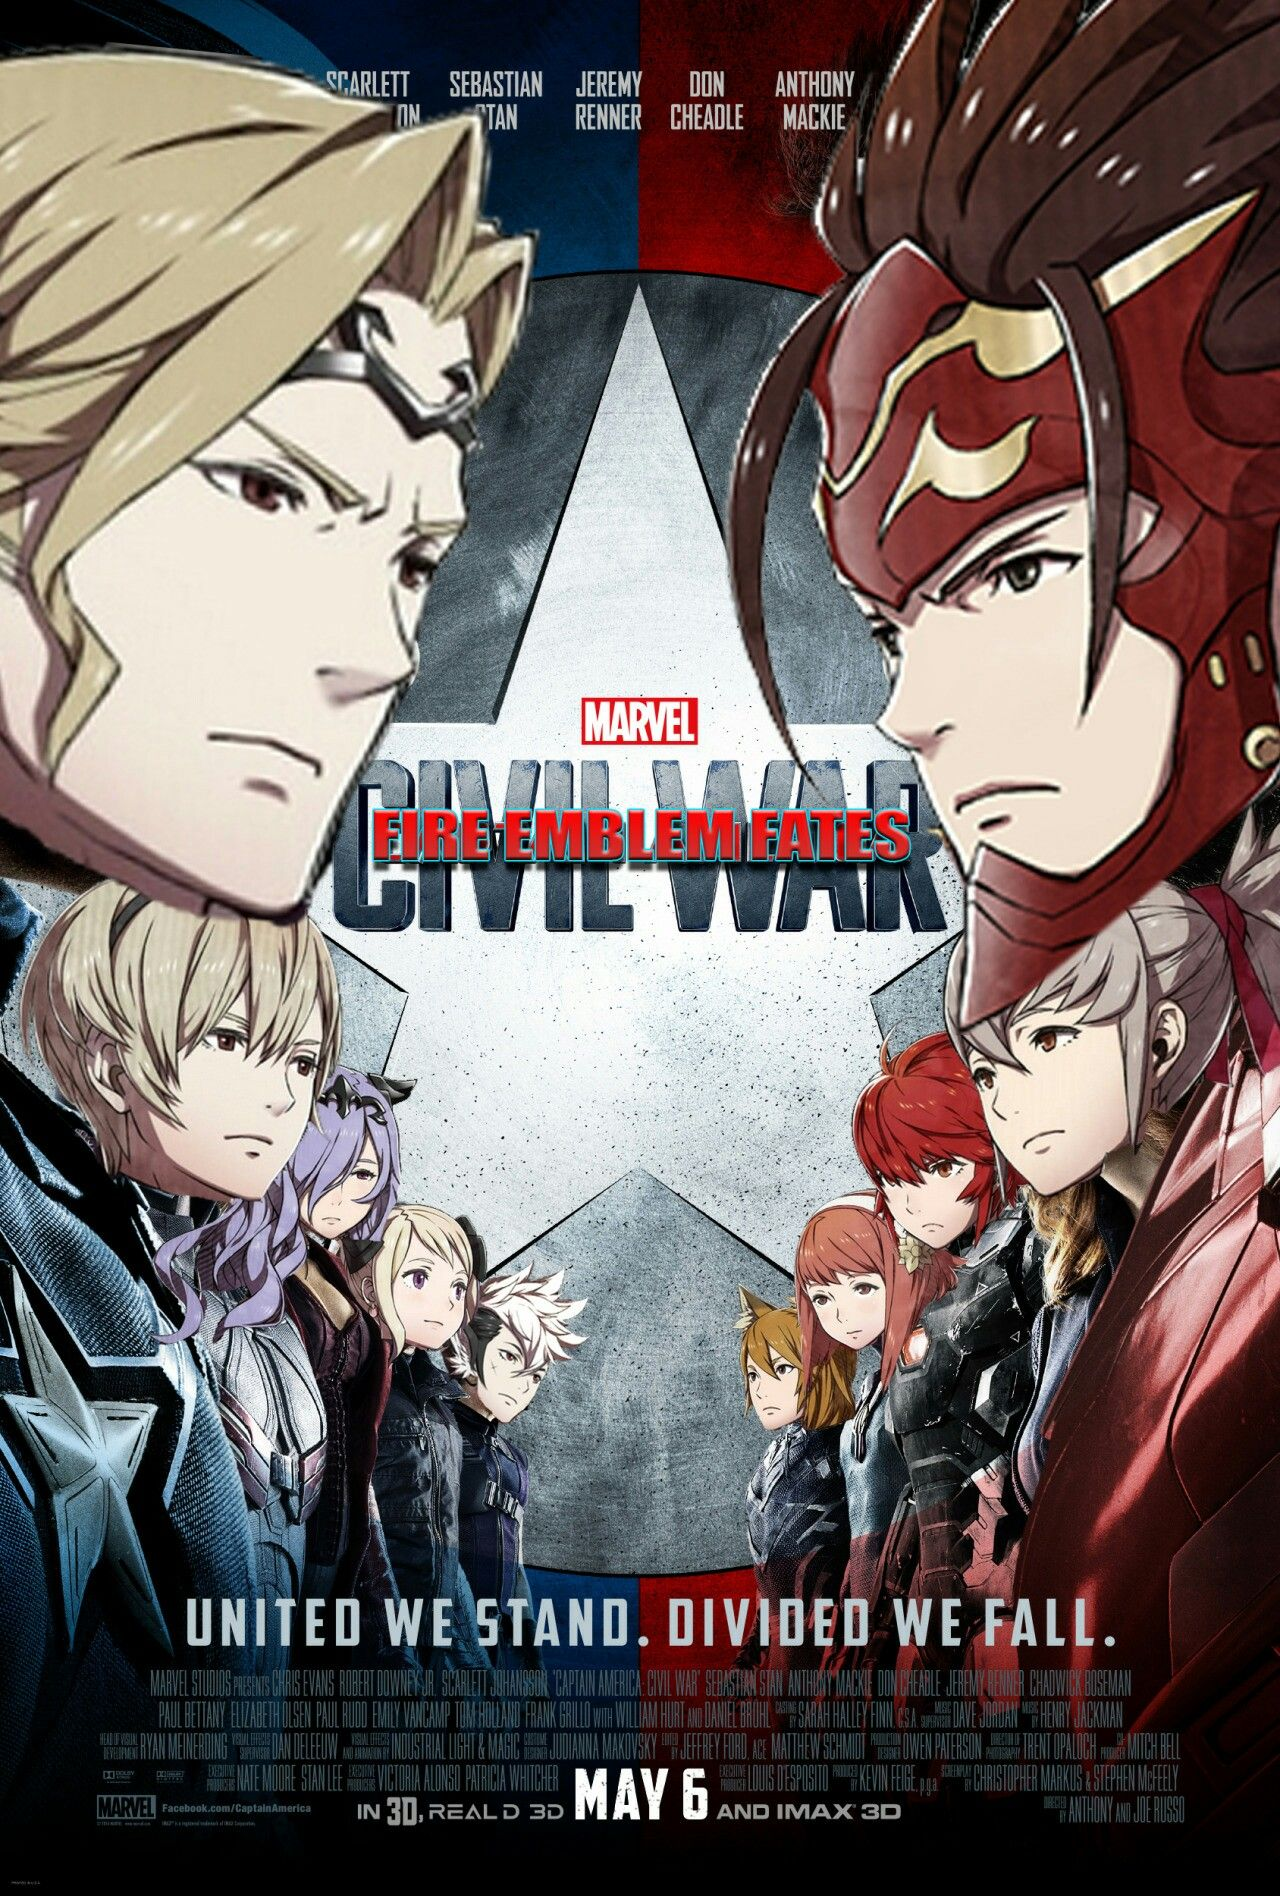 Fire emblem x civil war i was going to draw art of this fire emblem x civil war i was going to draw art of this biocorpaavc Choice Image